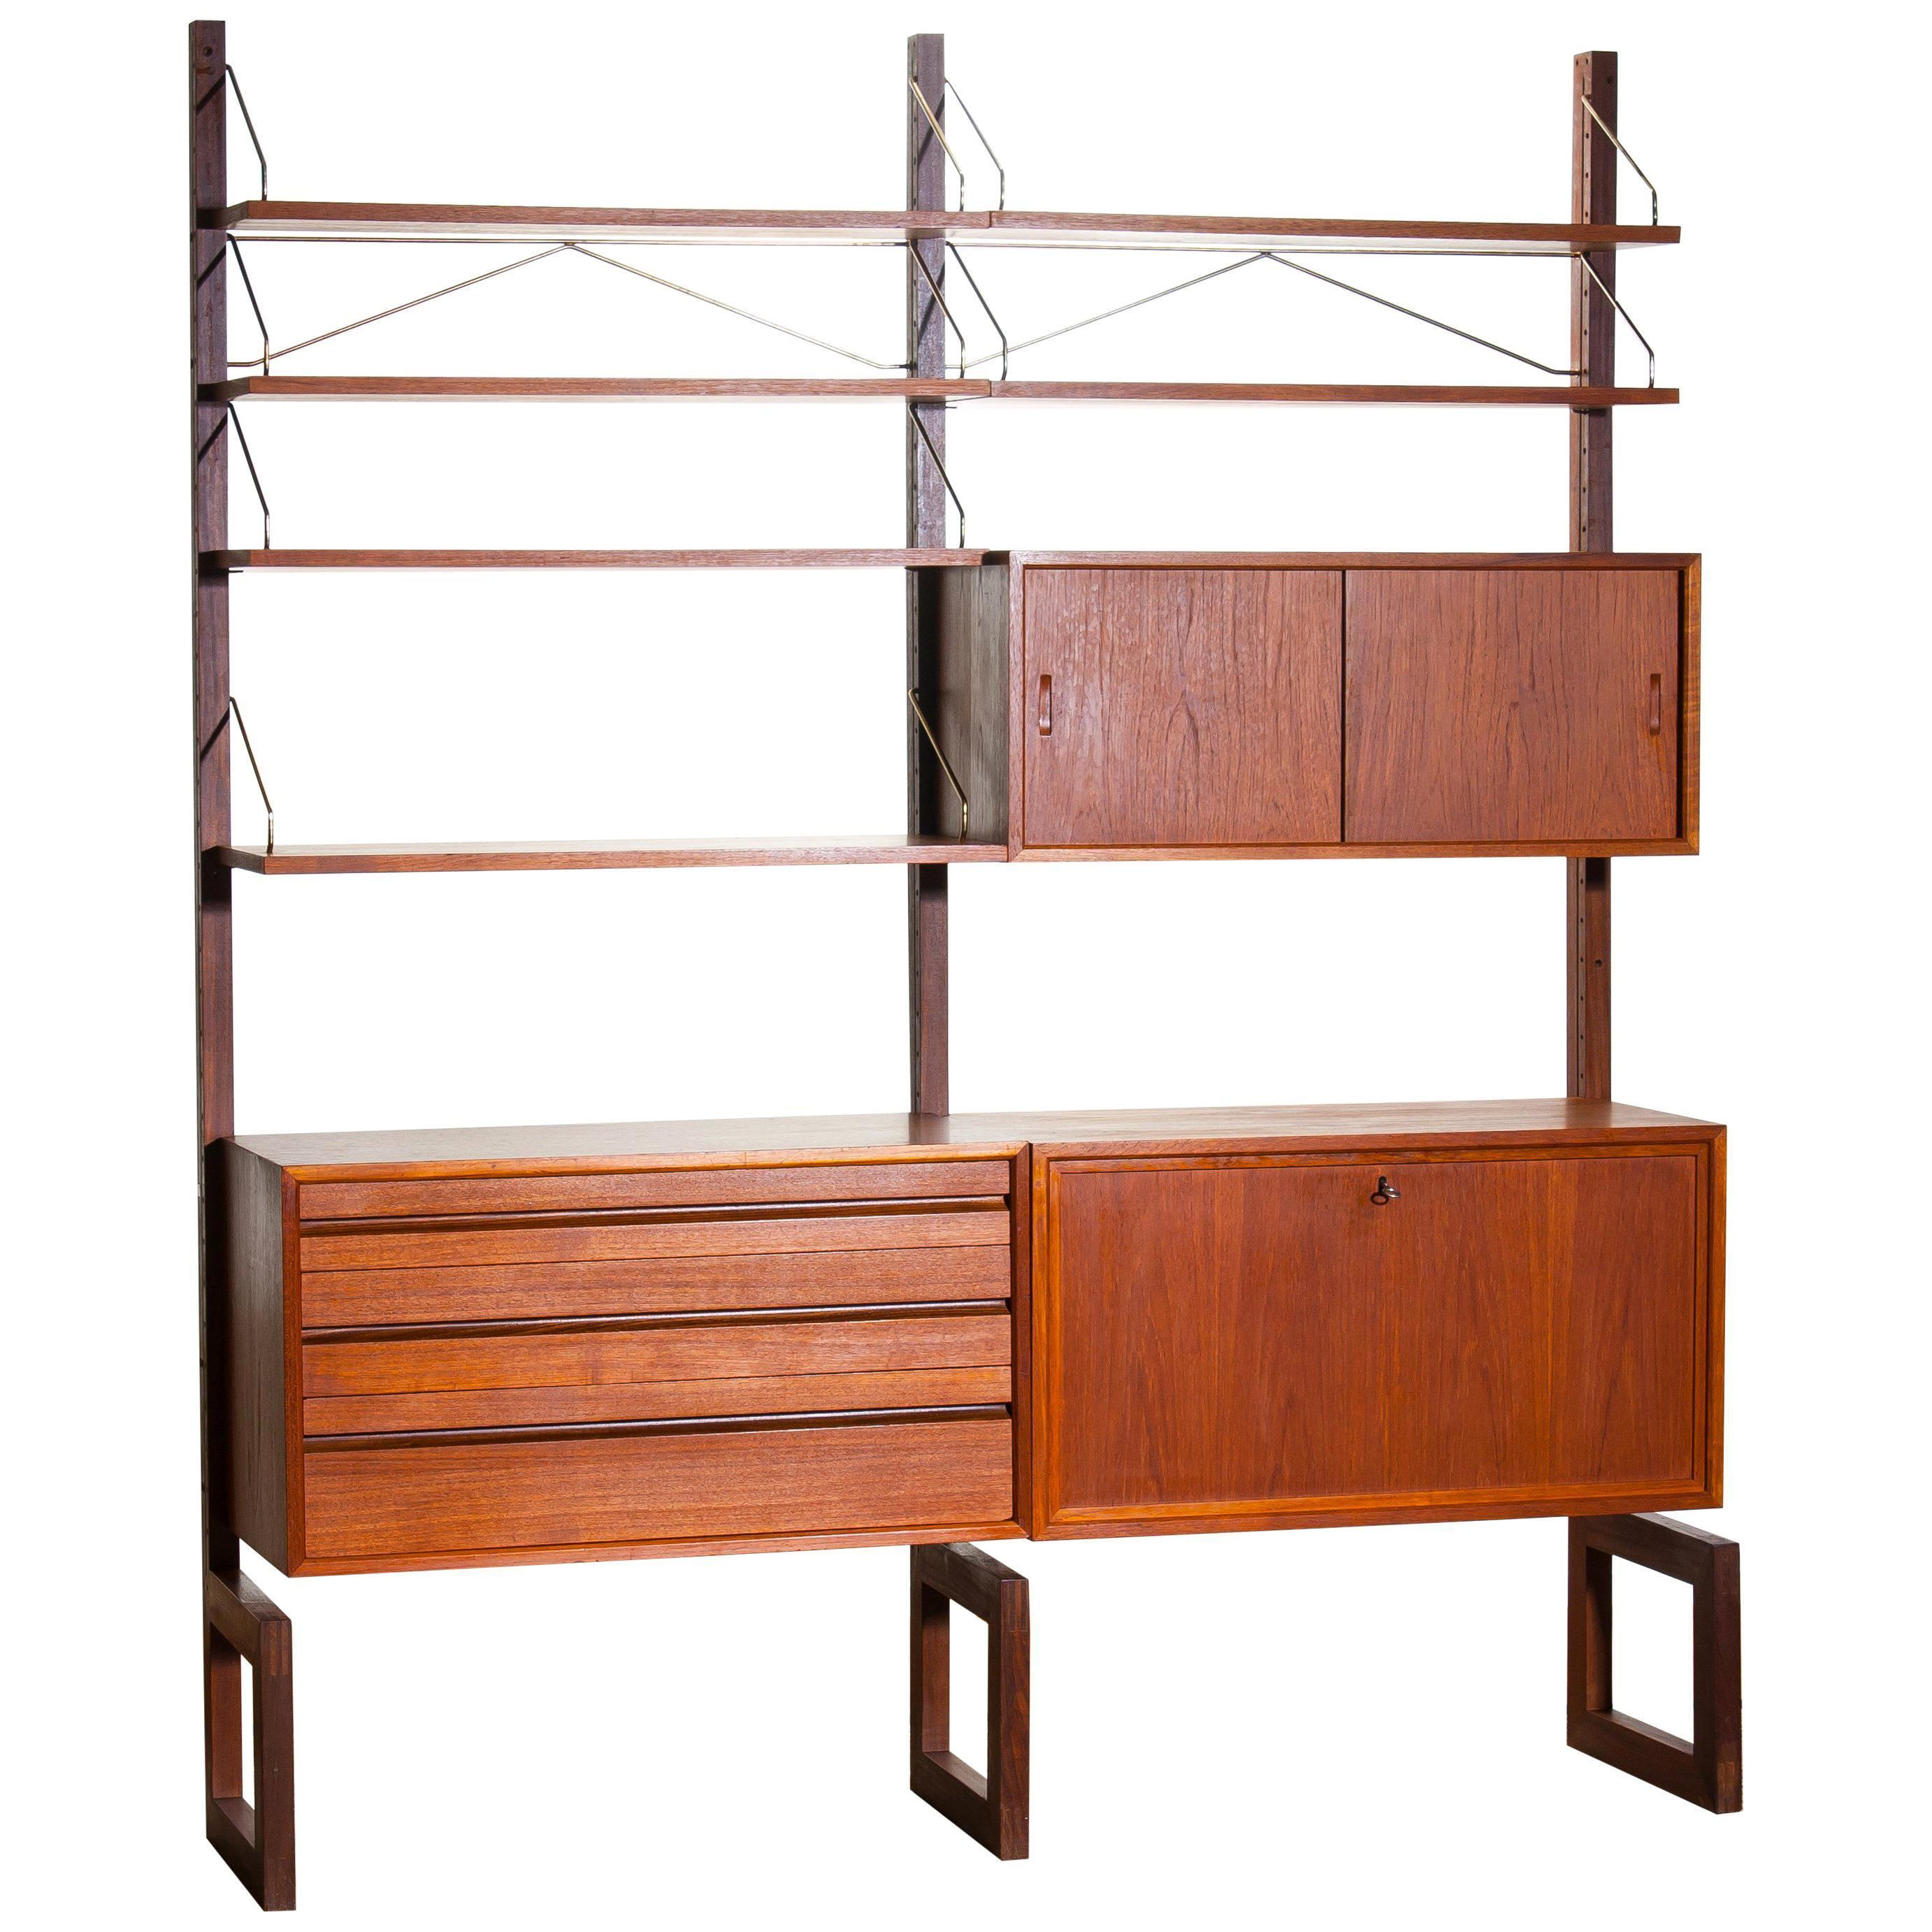 Tv Kast Wit Teak.1960s Poul Cadovius Teak With Golden Supports Dry Bar Or Book